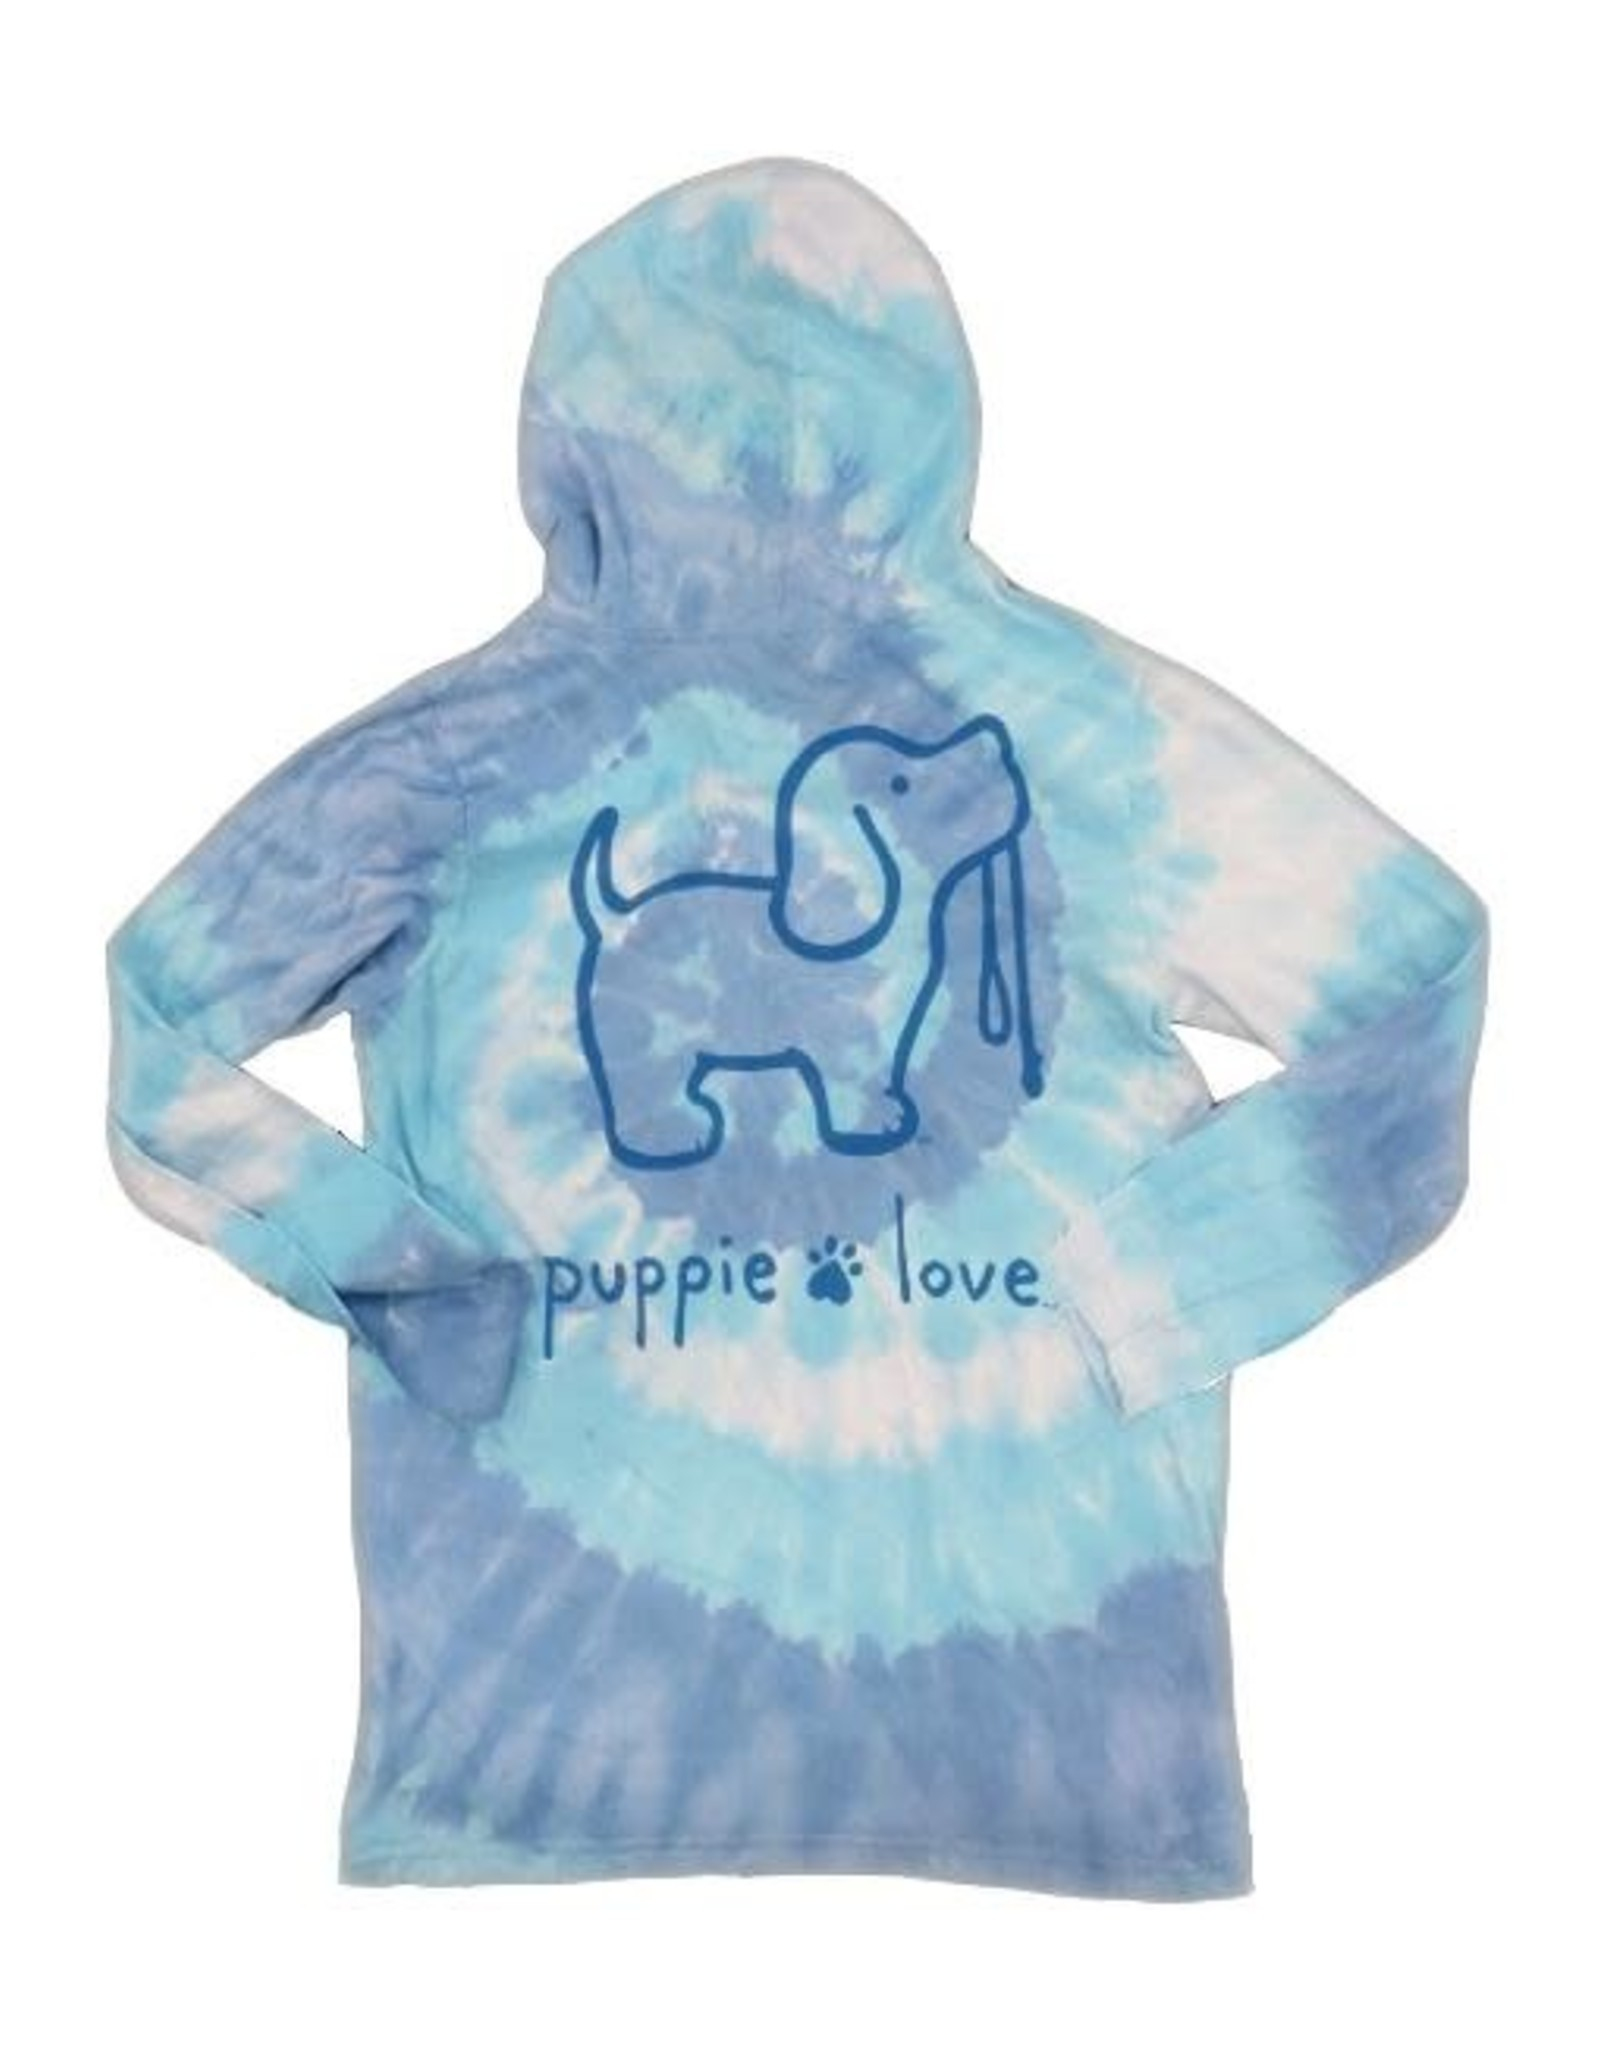 Puppie Love Puppie Love Tie Dye LS Hooded Cotton t-shirt